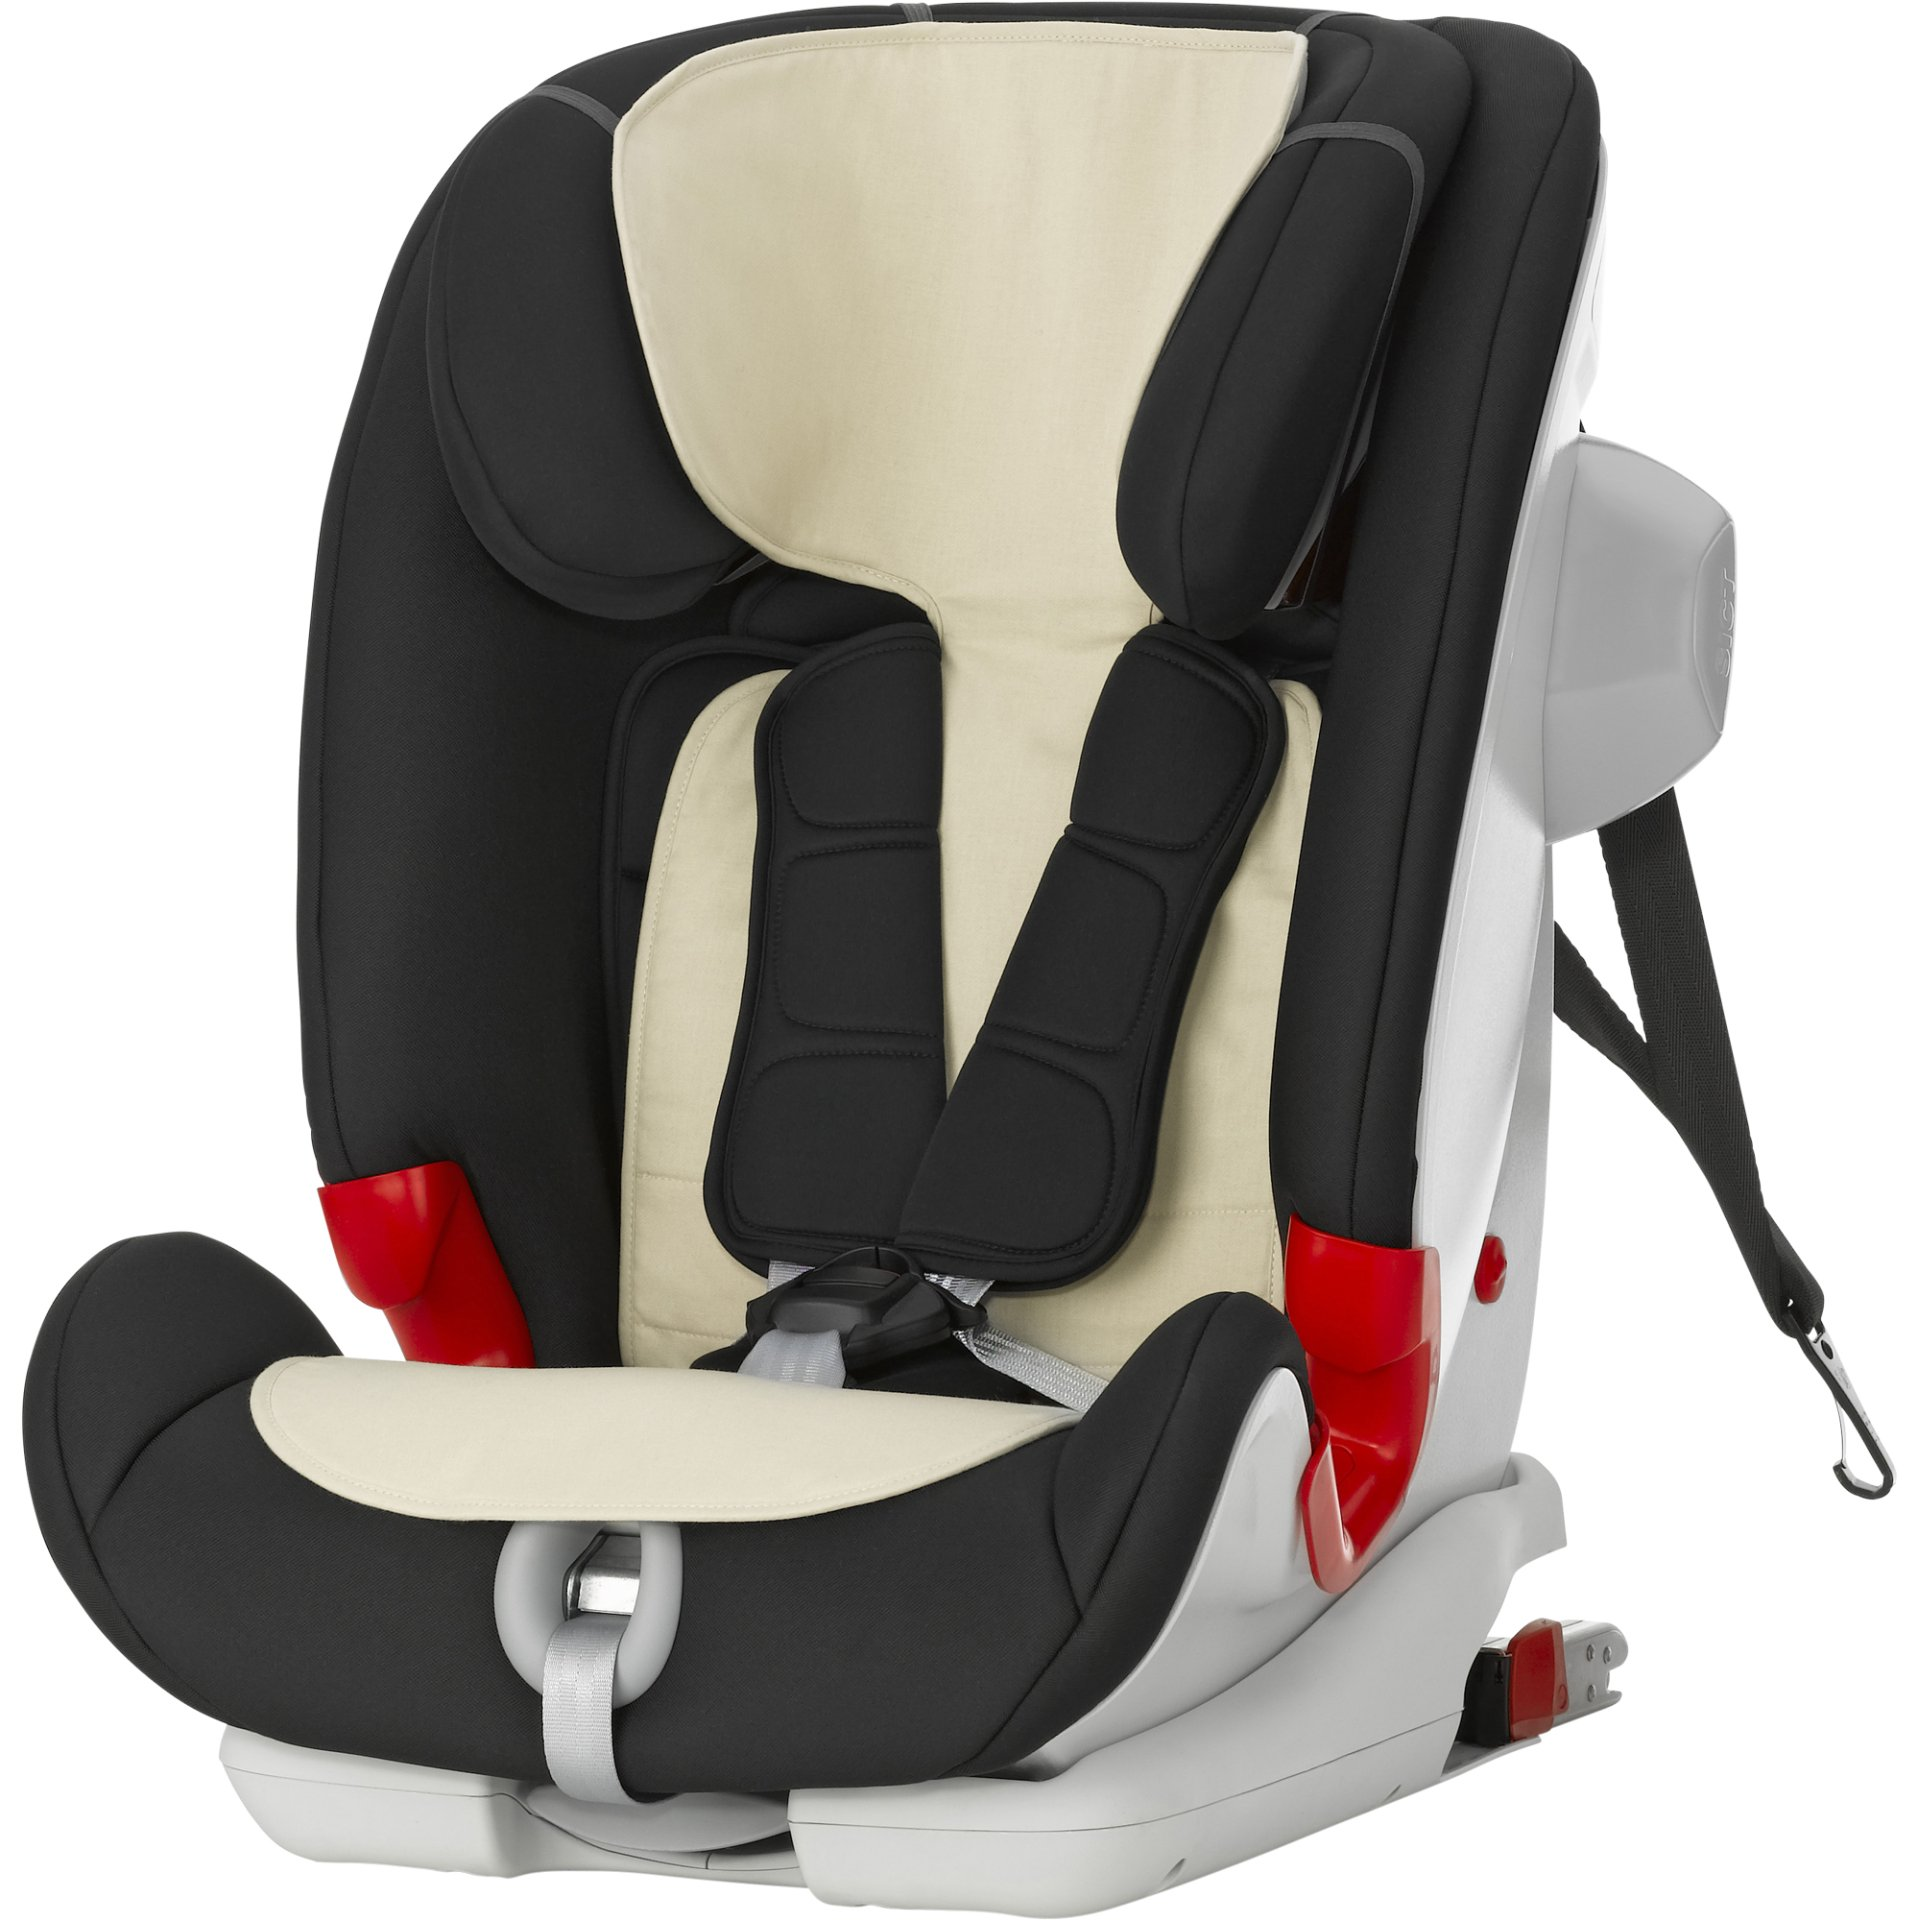 Britax Rmer Keep Cool Cover For Group 1 2 3 Child Car Seats With Headrest